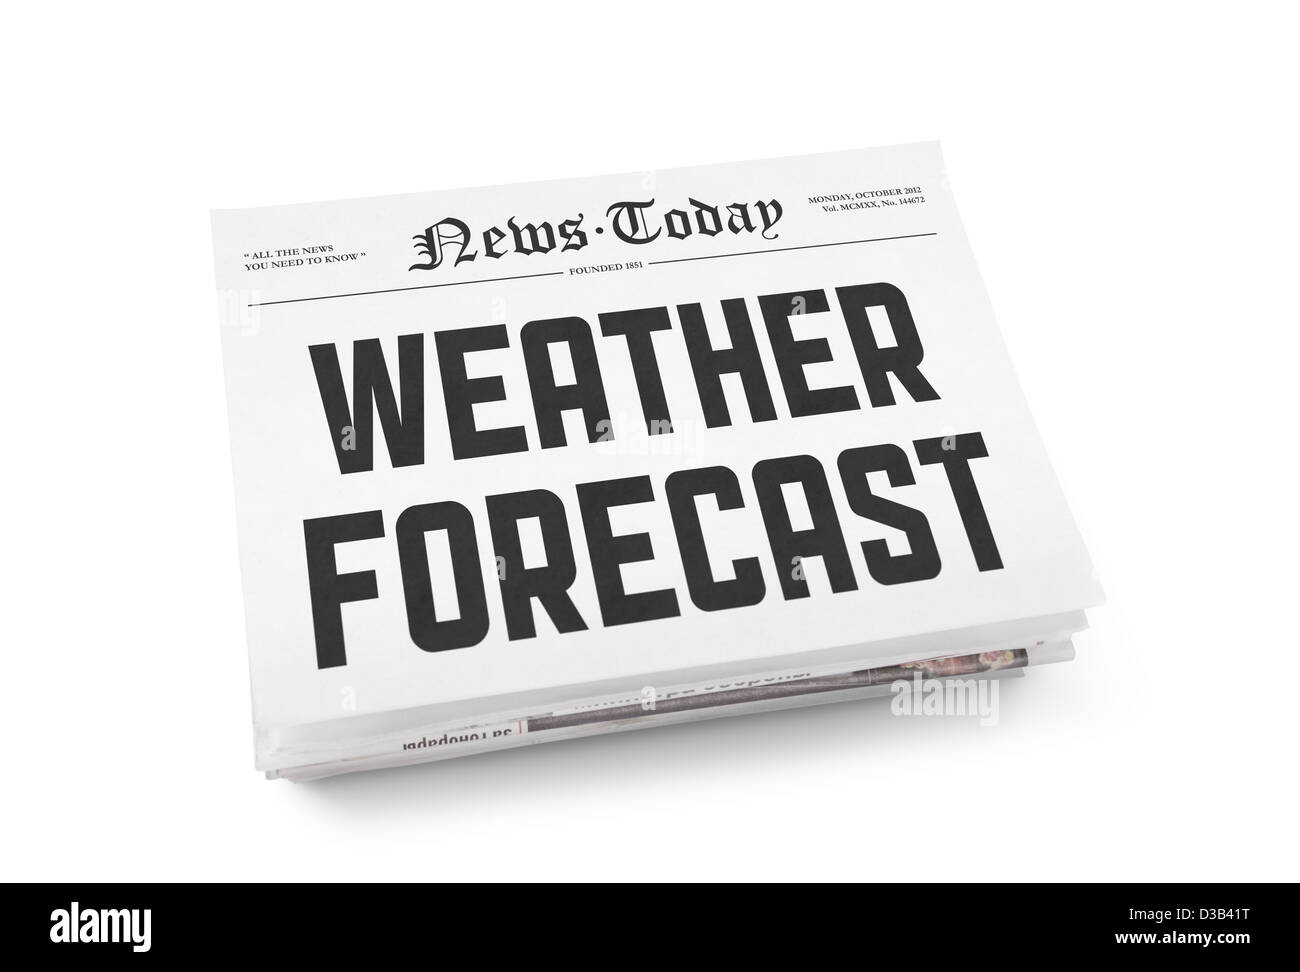 A stack of newspapers with headline 'Weather Forecast' on a front page. Isolated on white. - Stock Image